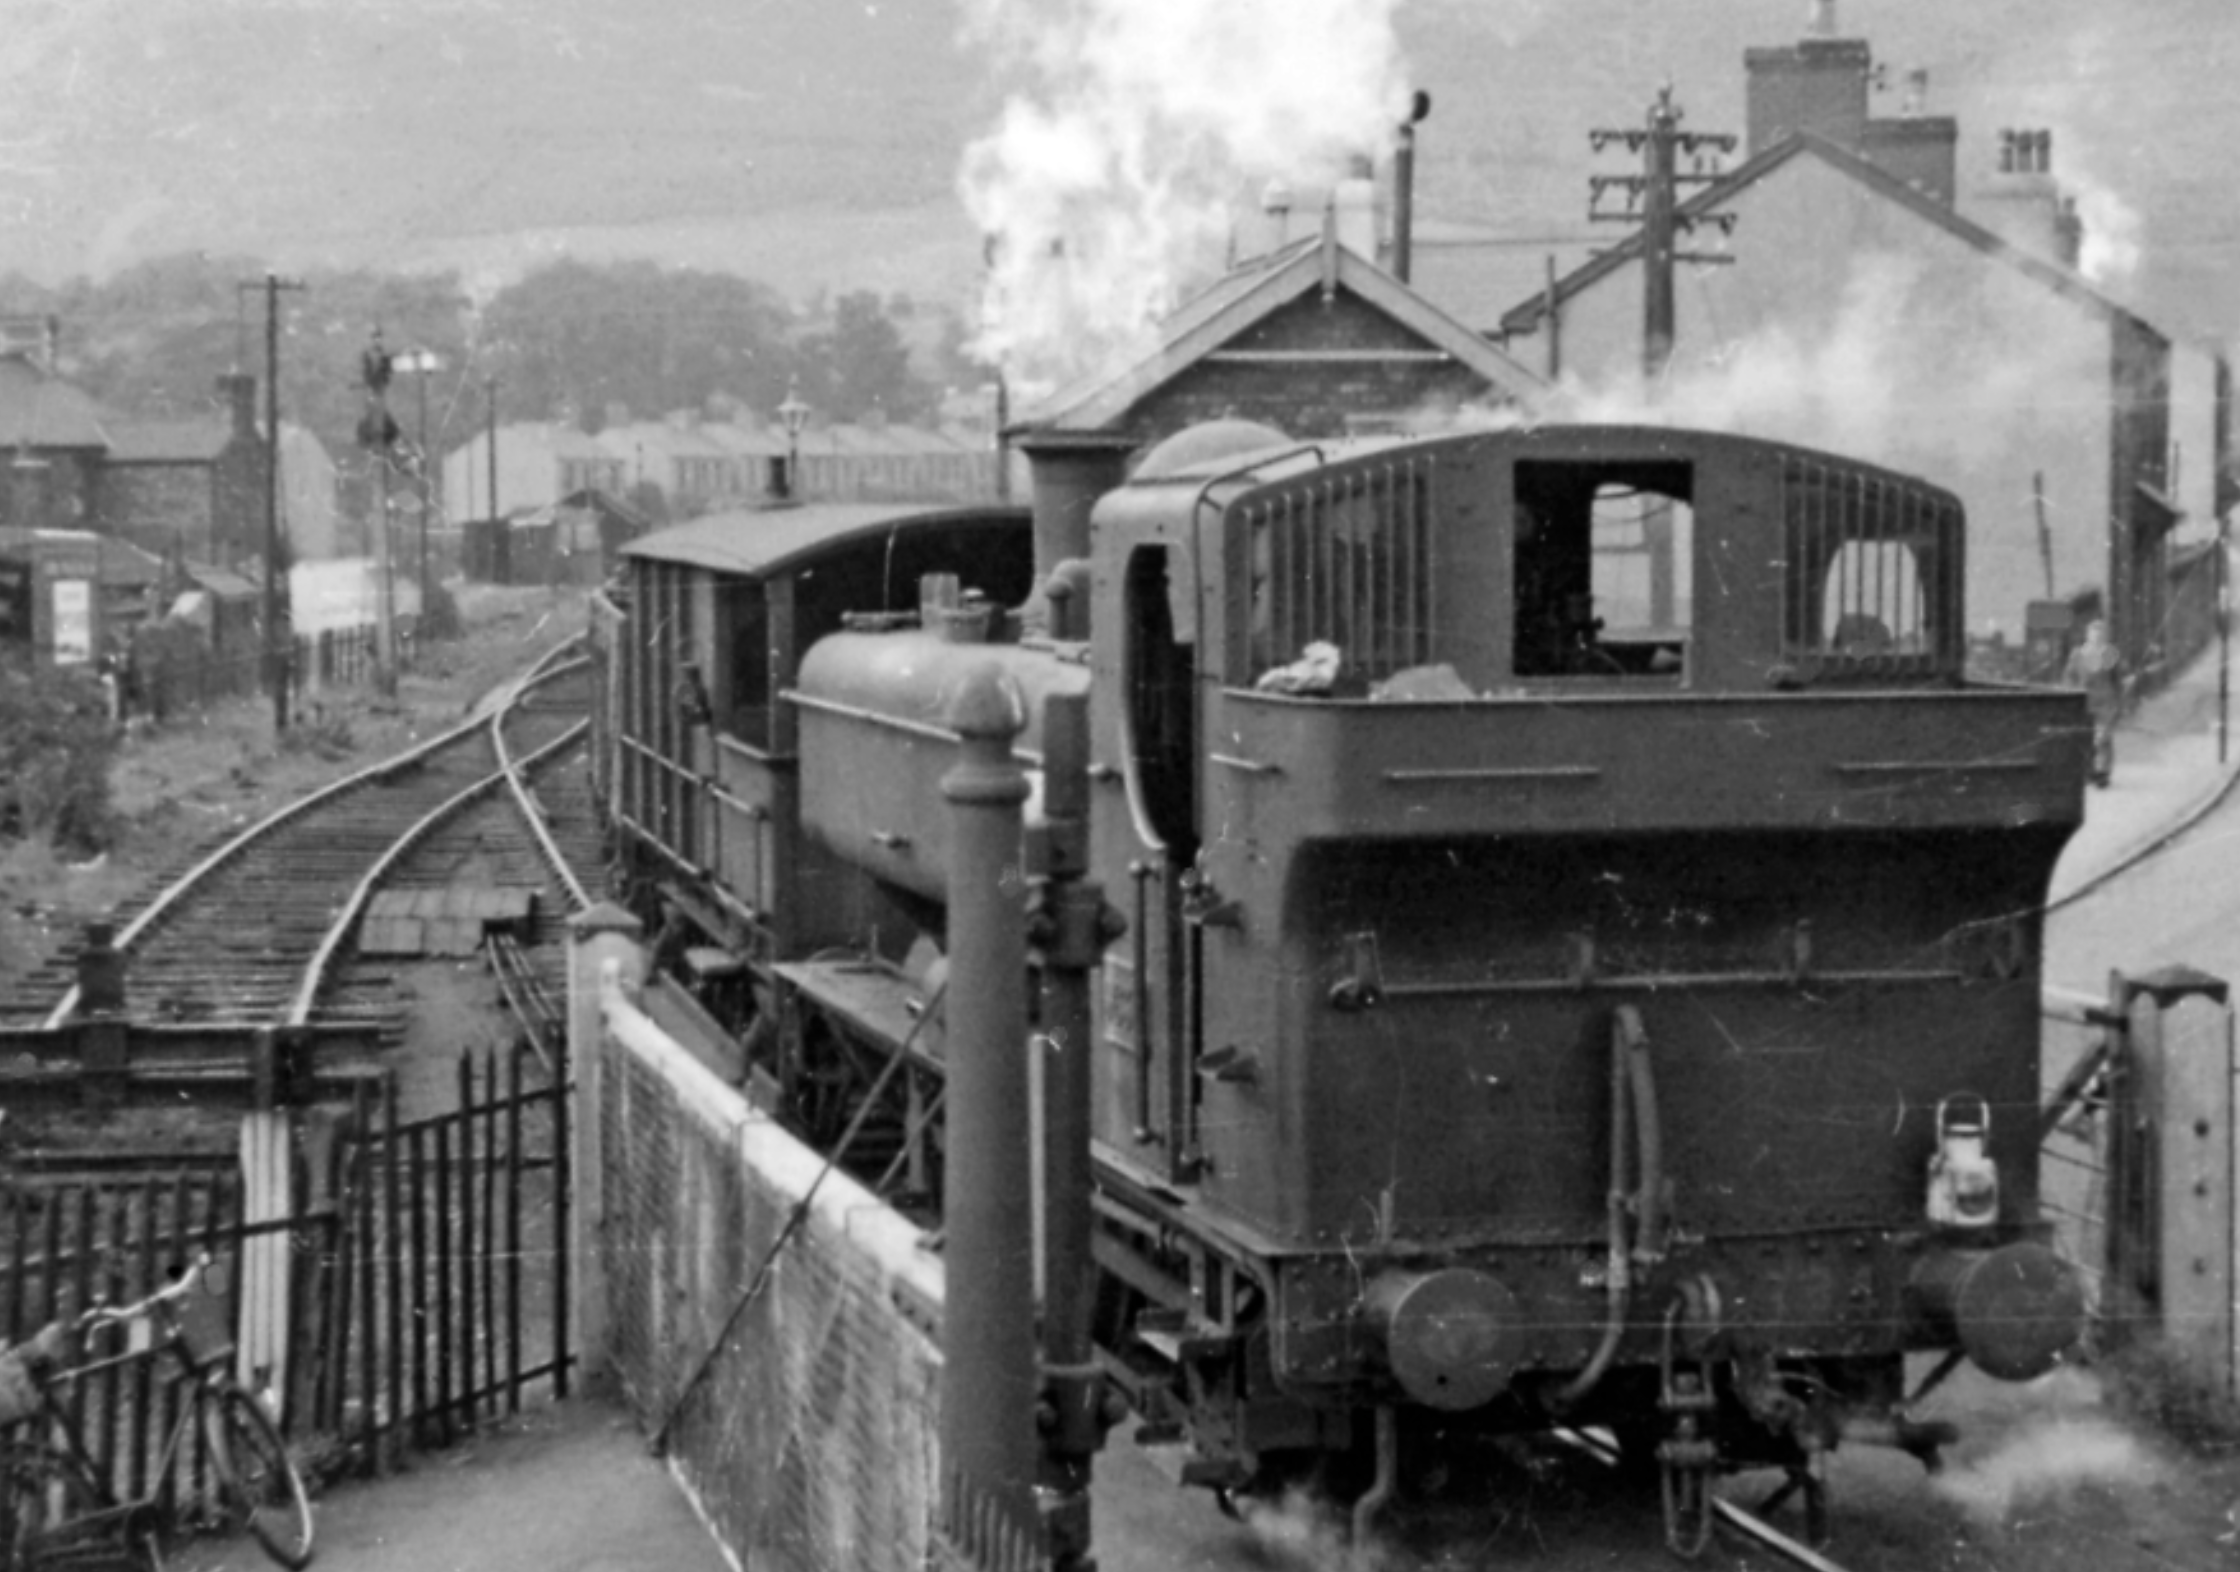 Ex-GW '8750' 0-6-0 pannier tank banking an empties train at Duffryn Junction towards Maesteg.  View north-east up the Duffryn valley on the ex-Port Talbot Railway line - at 1-in-40 - to Maesteg and Pontyrhyll, which was closed to passengers on 11/9/33 and to goods on 31/8/64. The banker is Collett '8750' class 0-6-0 No. 9634 (built 1/46, withdrawn 5/64).  Photo: Ben Brooksbank (Wikimedia Commons)